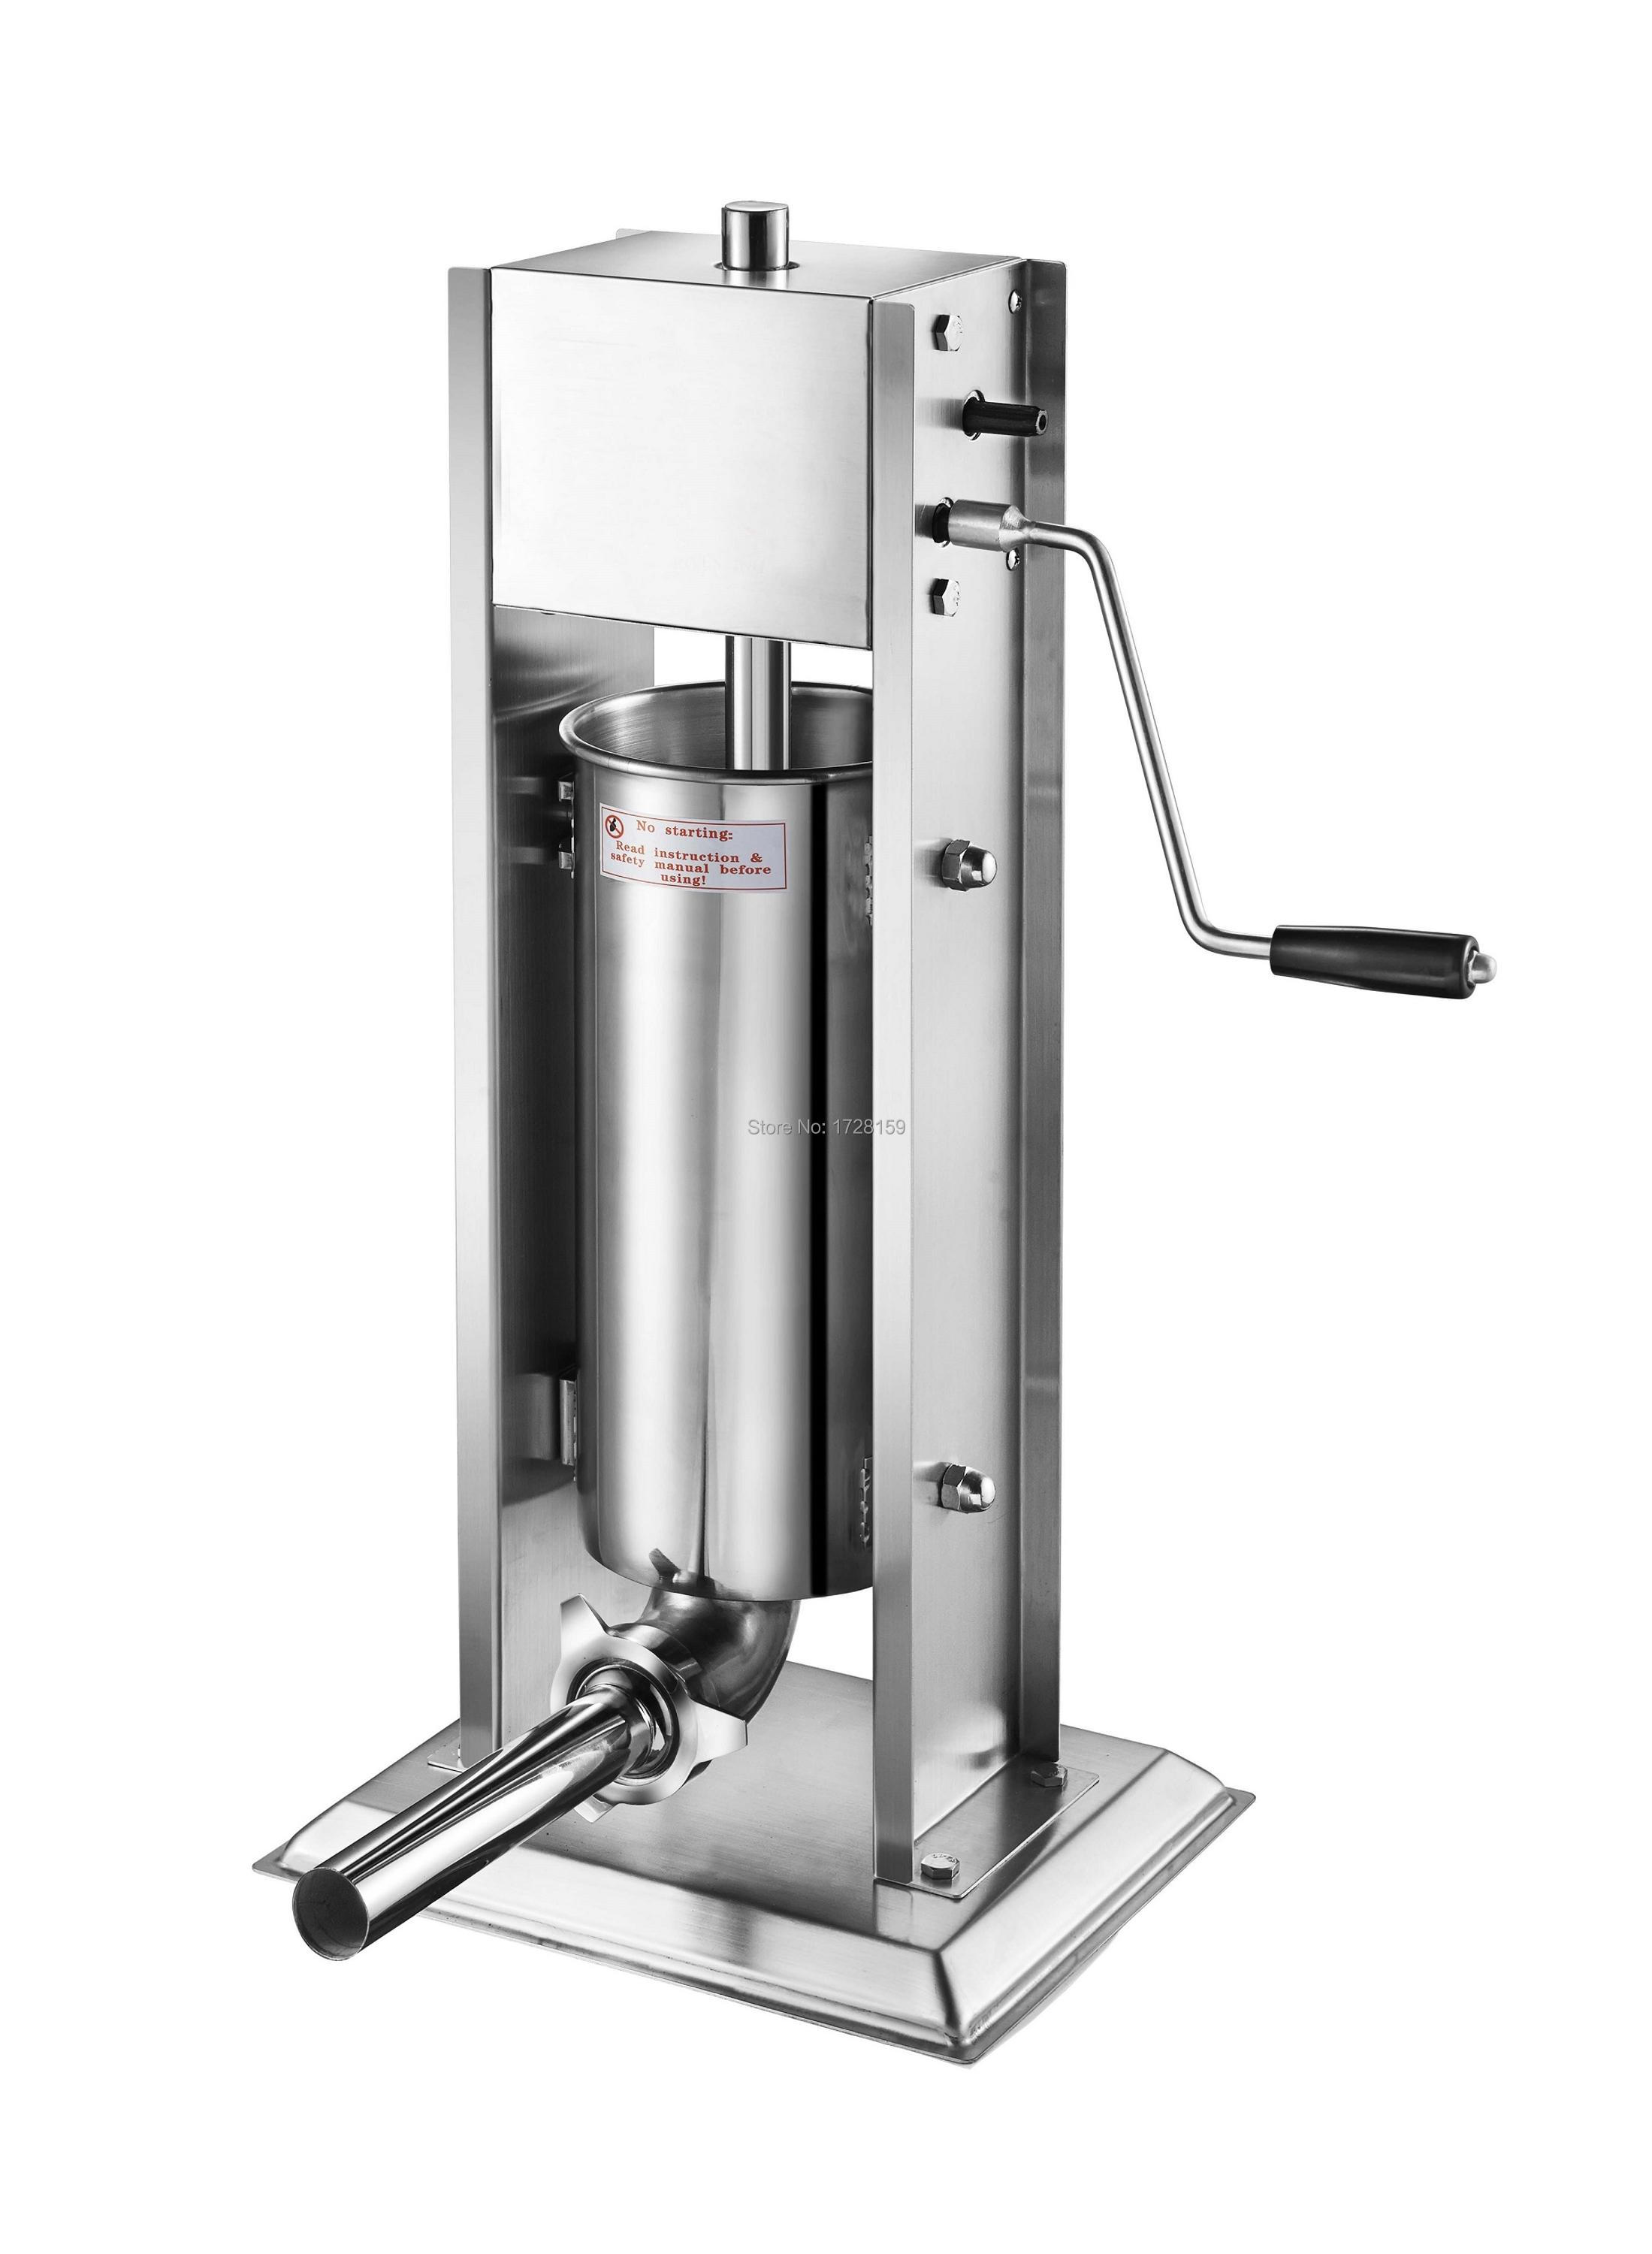 3L/7lb stainless steel  manual sausage meat stuffer, vertical sausage filling machine meat processor sausage stuffer ship from germany 5l stuffer maker machine commercial sausage filling machine sausage stainless steel with 4 filling pipes